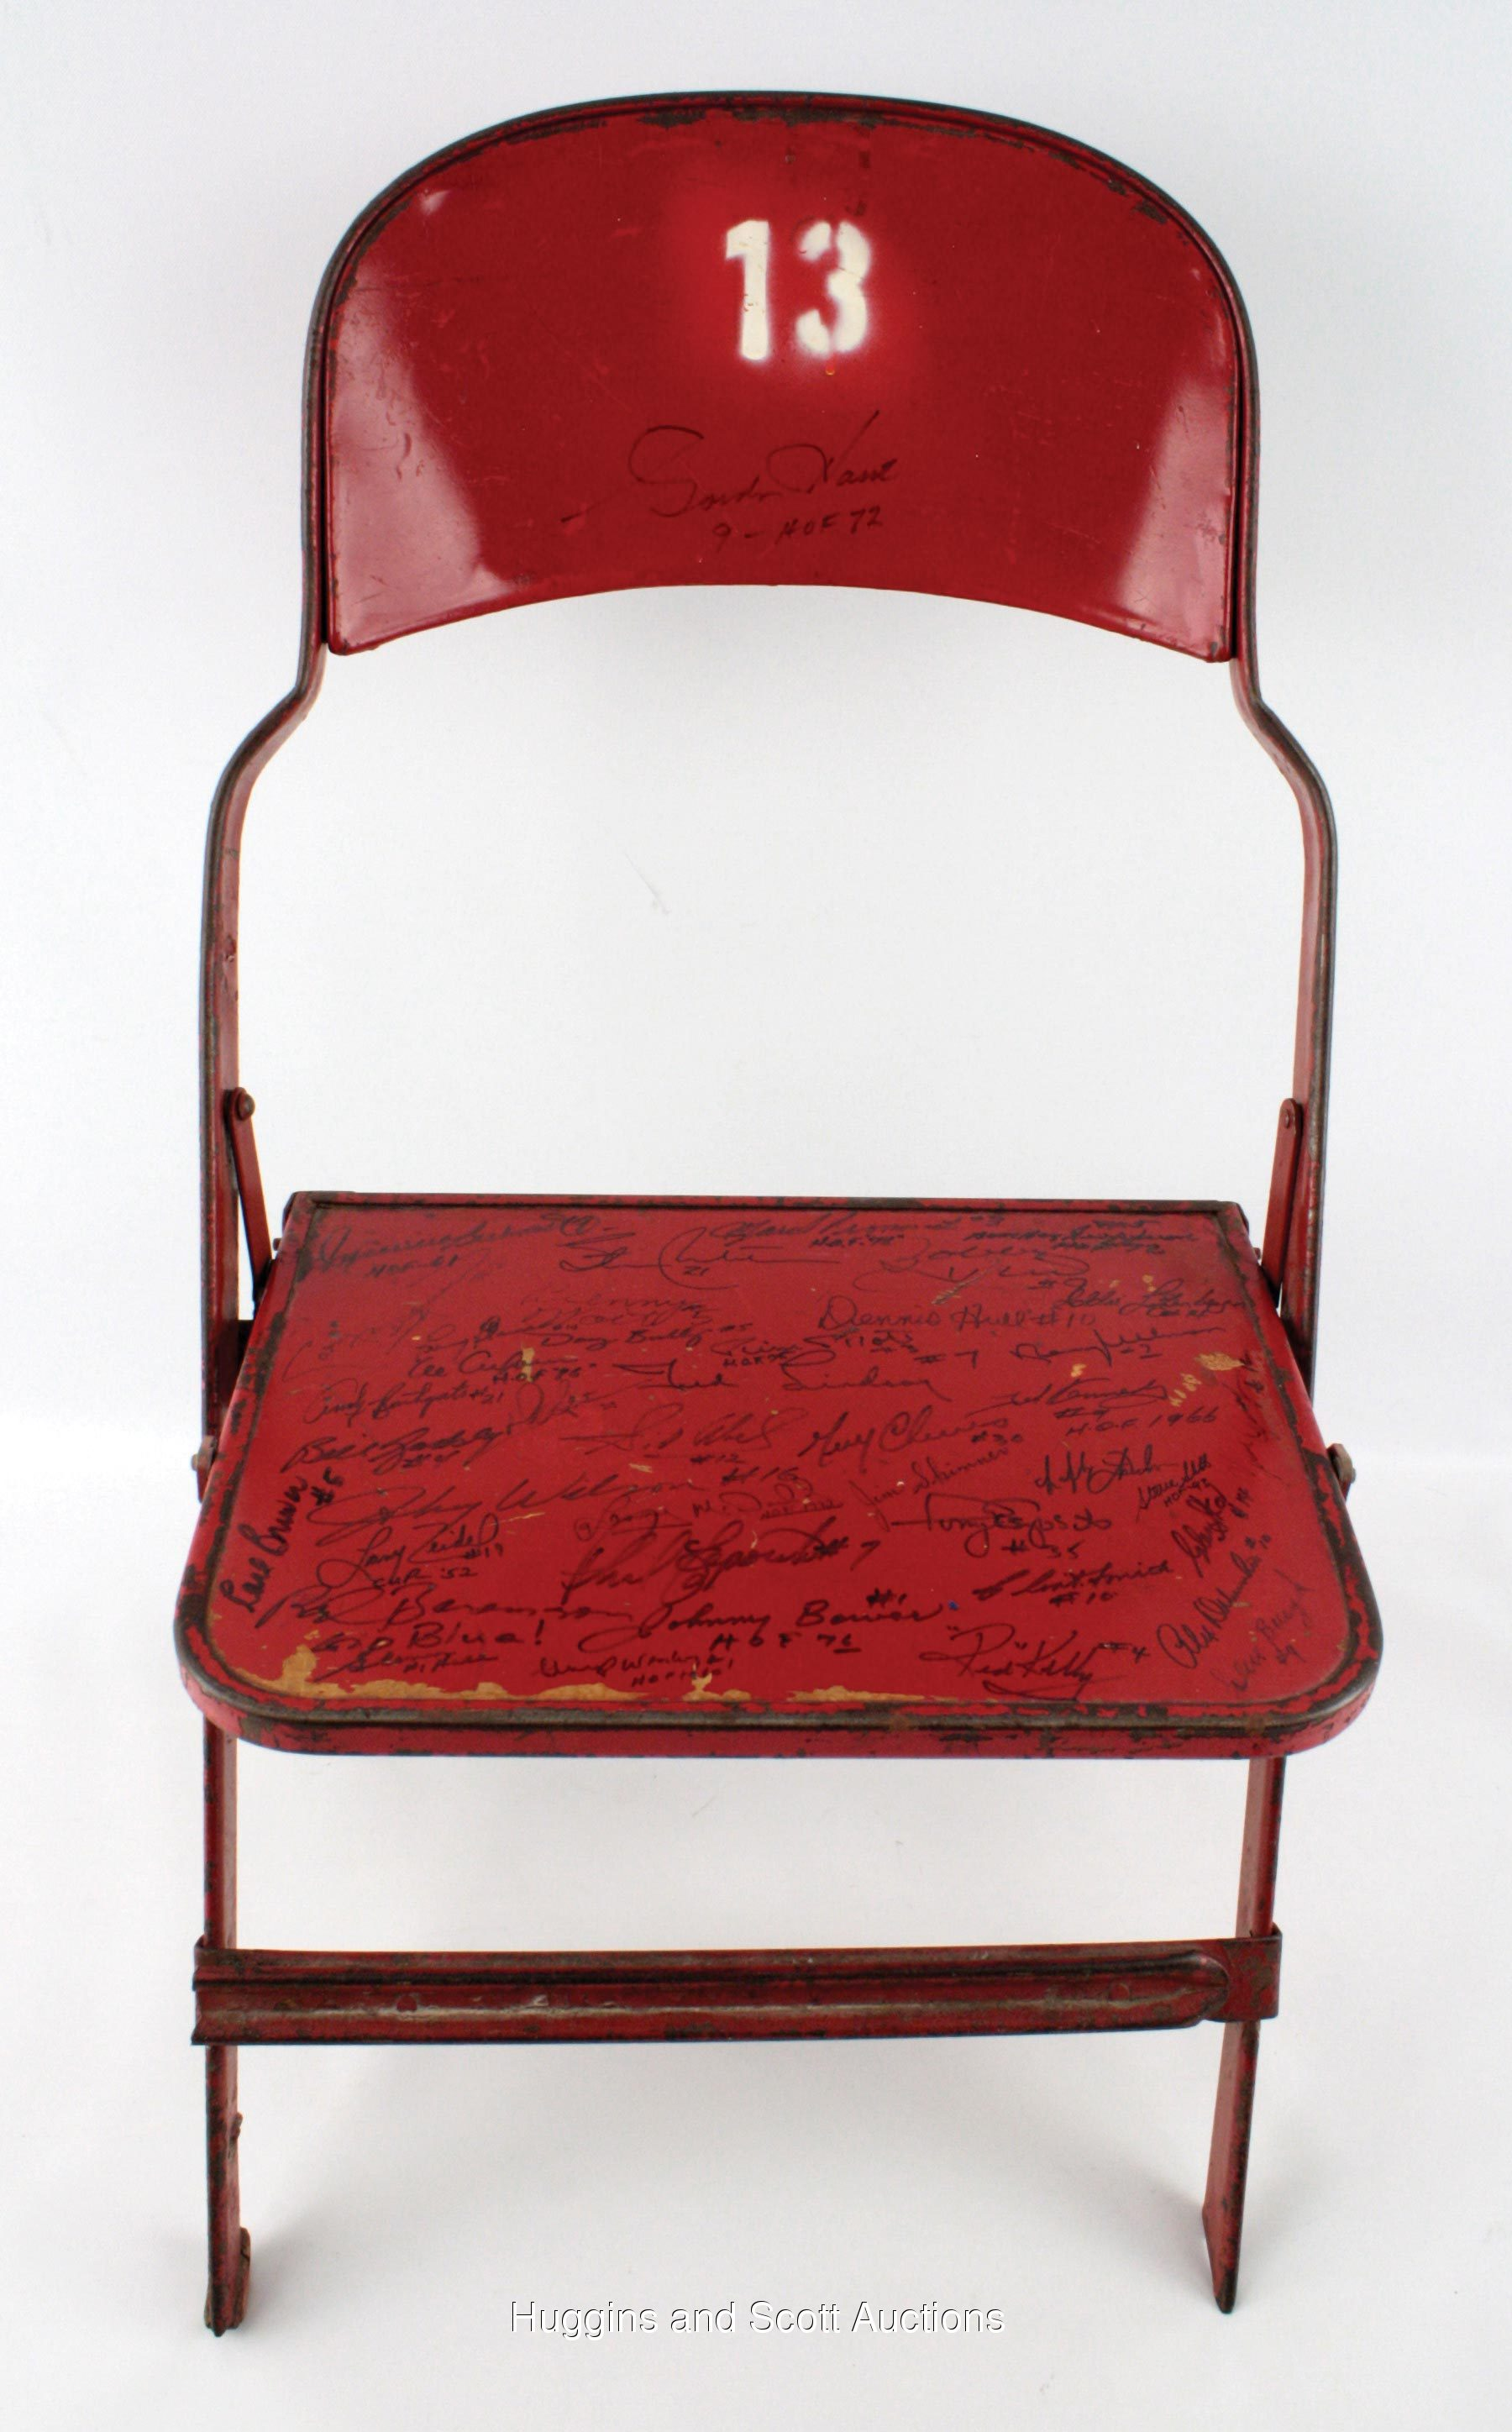 Groovy Detroit Olympia Folding Chair Signed By 41 Nhl Greats Alphanode Cool Chair Designs And Ideas Alphanodeonline